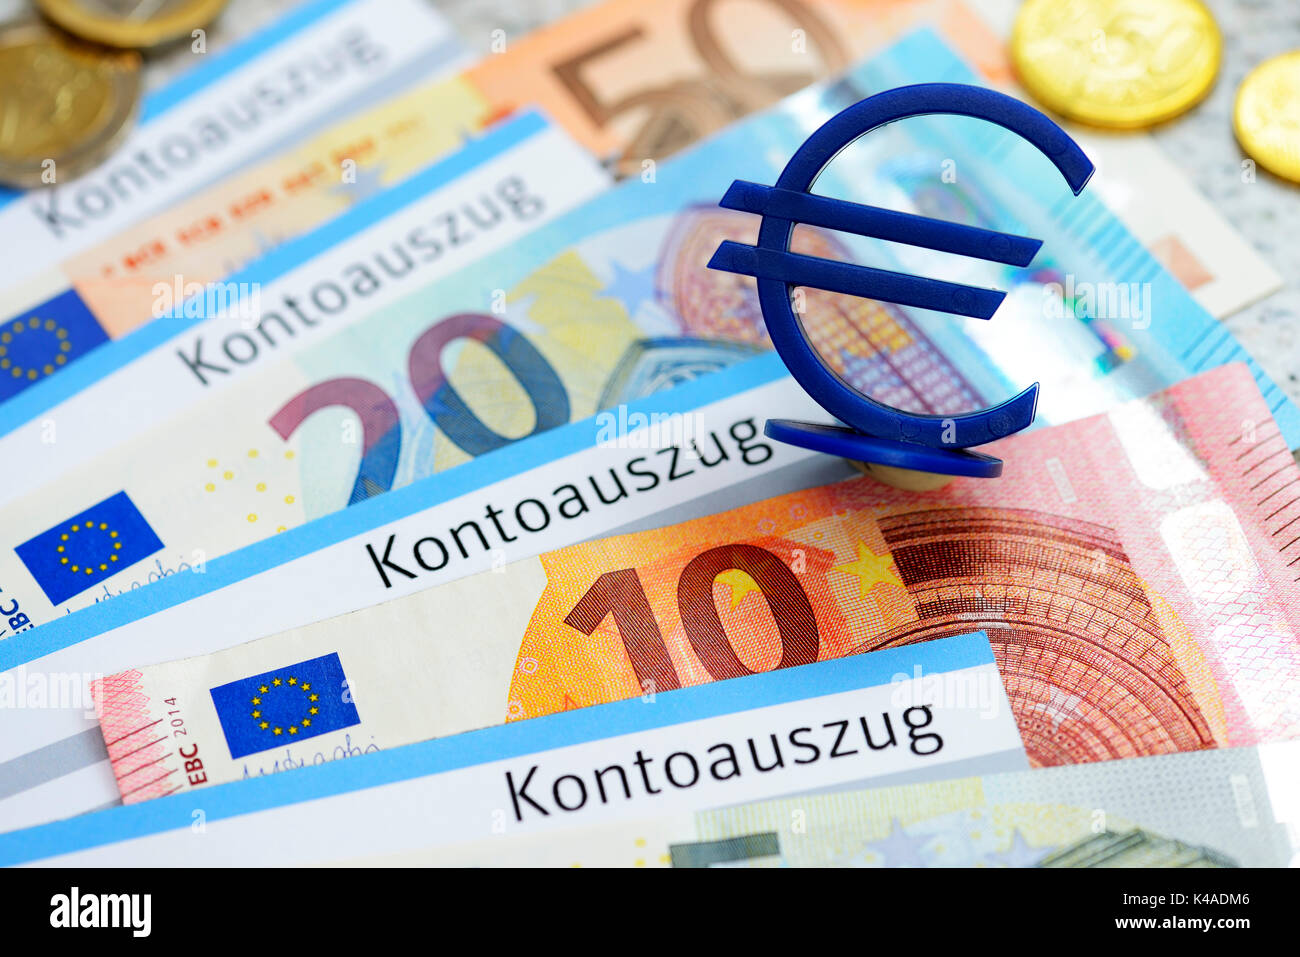 Bank Statements, Euro Banknotes And Euro Sign Stock Photo